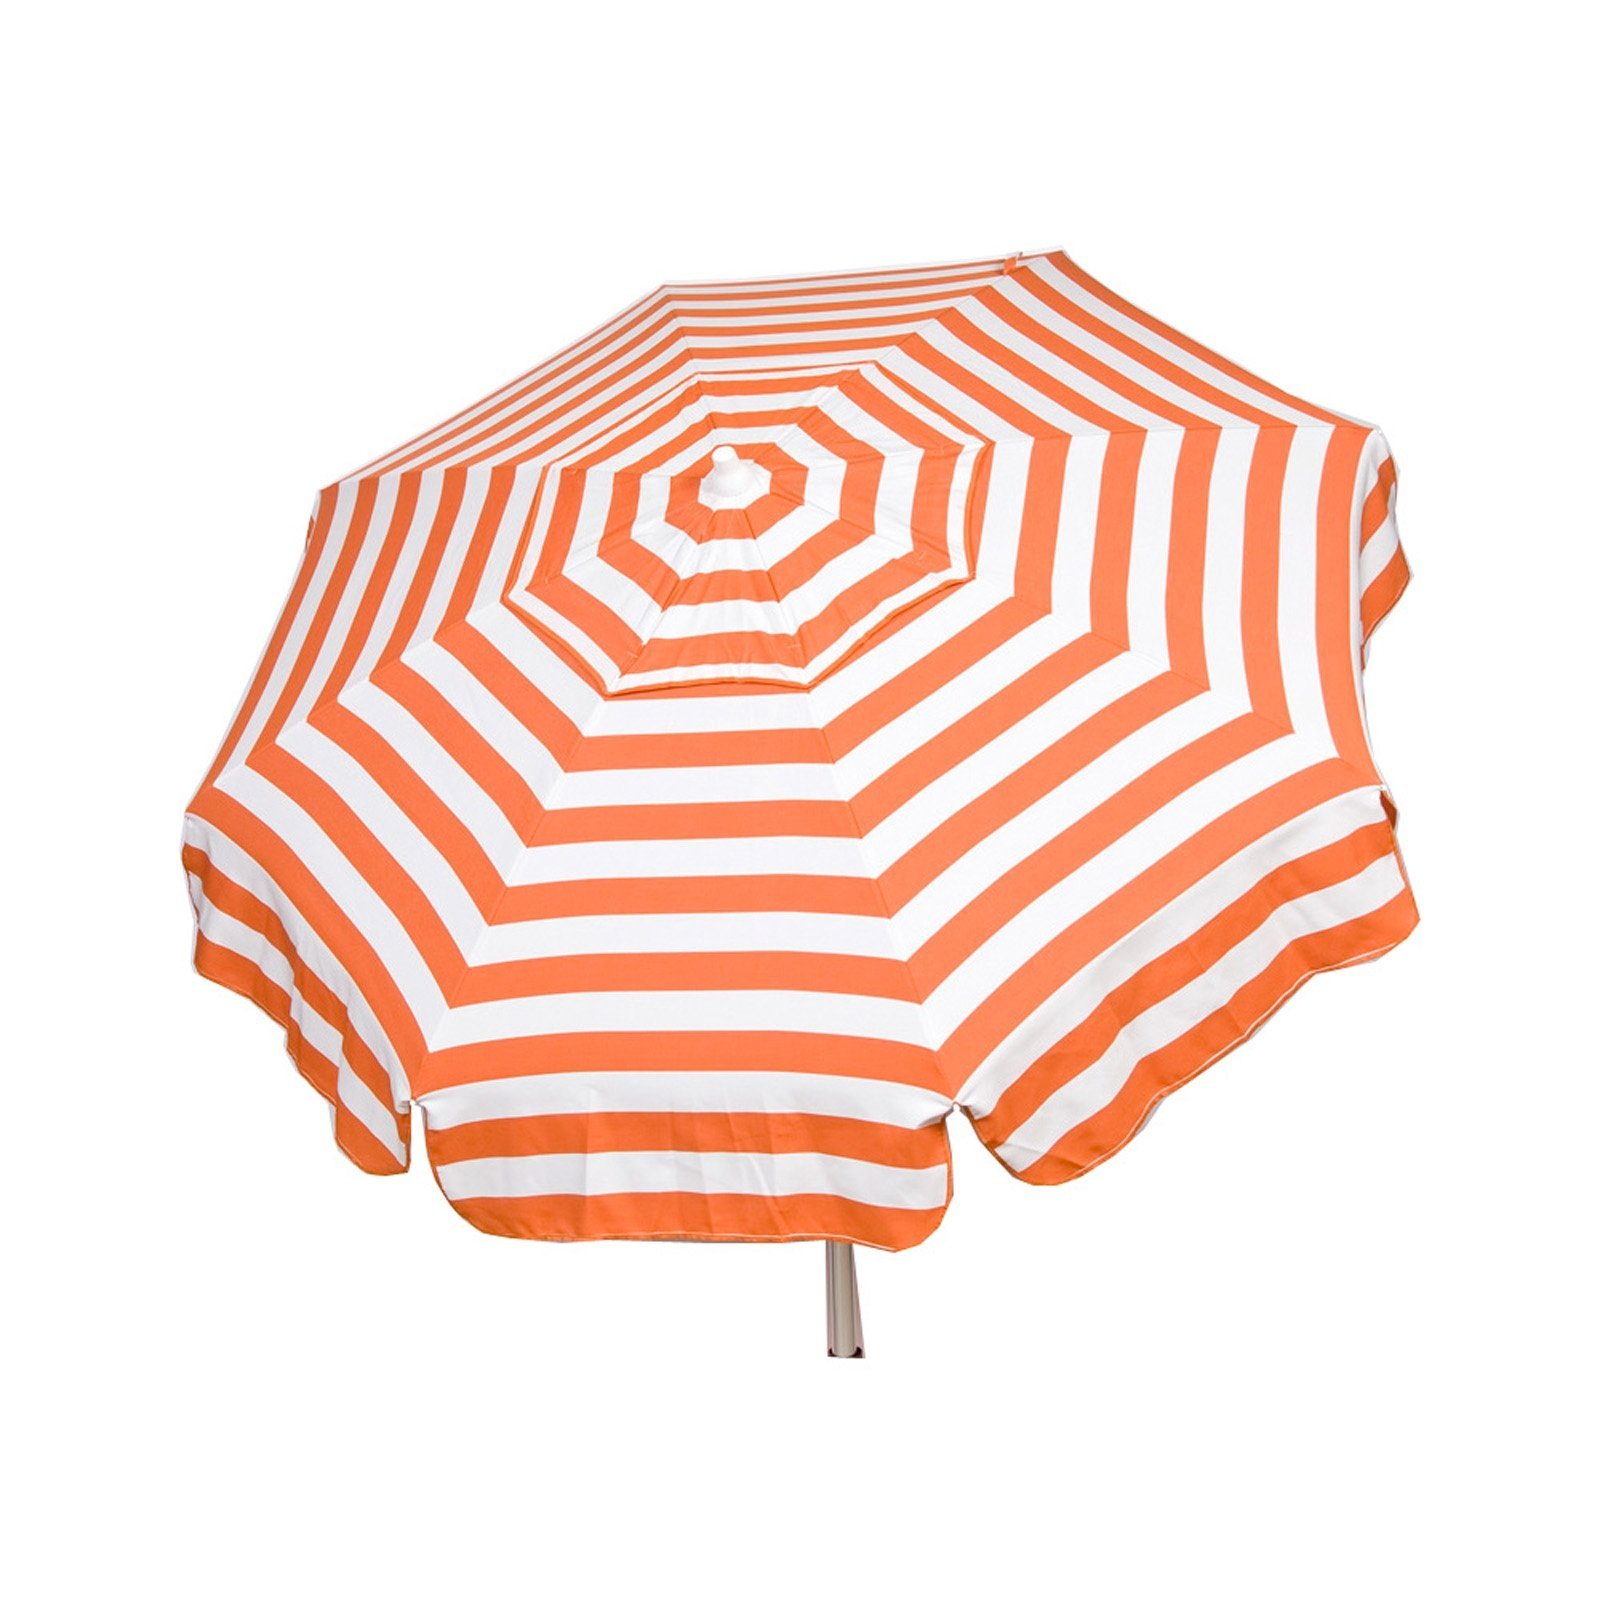 Italian 6 foot Push/Tilt Umbrella Acrylic Stripes Orange and White - Bar Pole